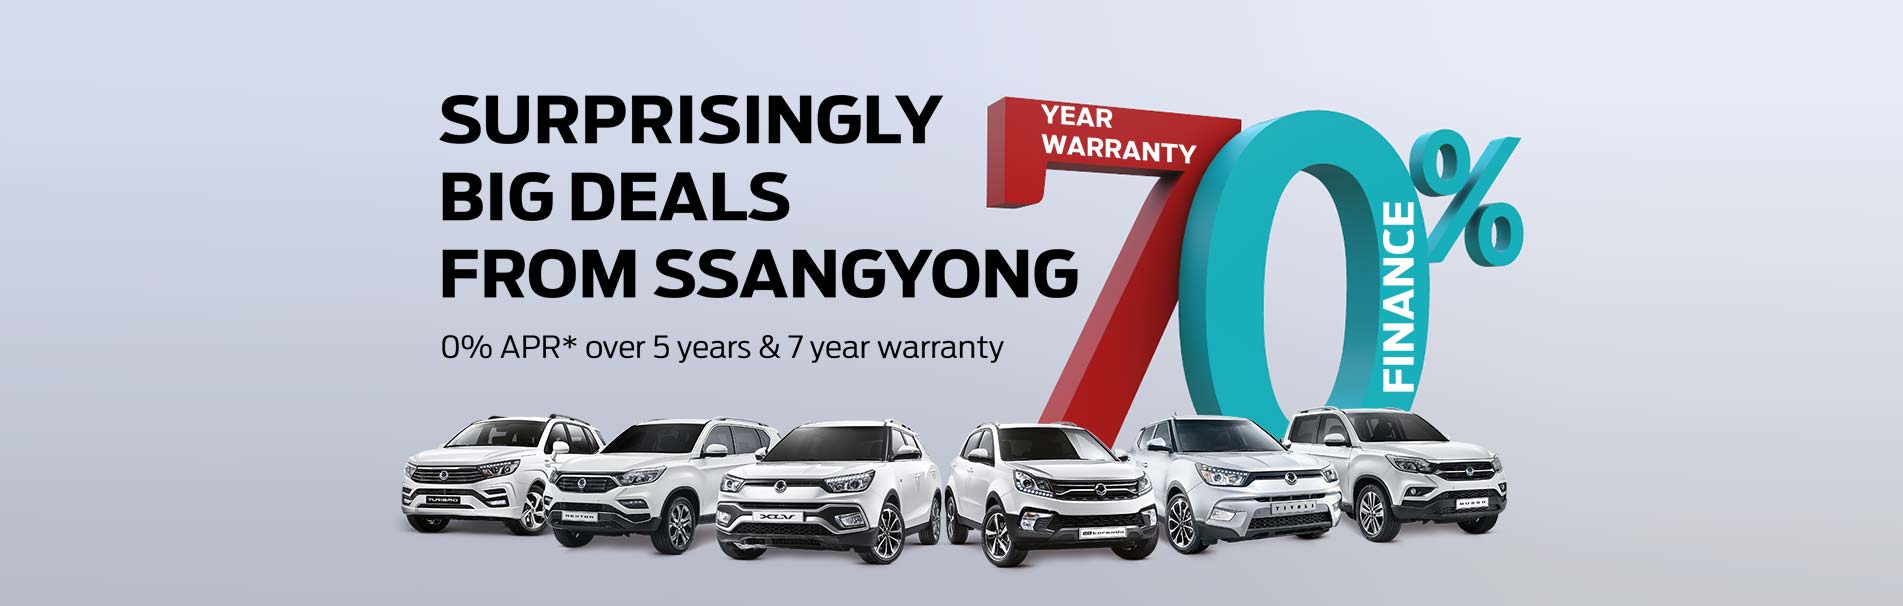 ssangyong-five-year-zero-percent-finance-car-deals-sli